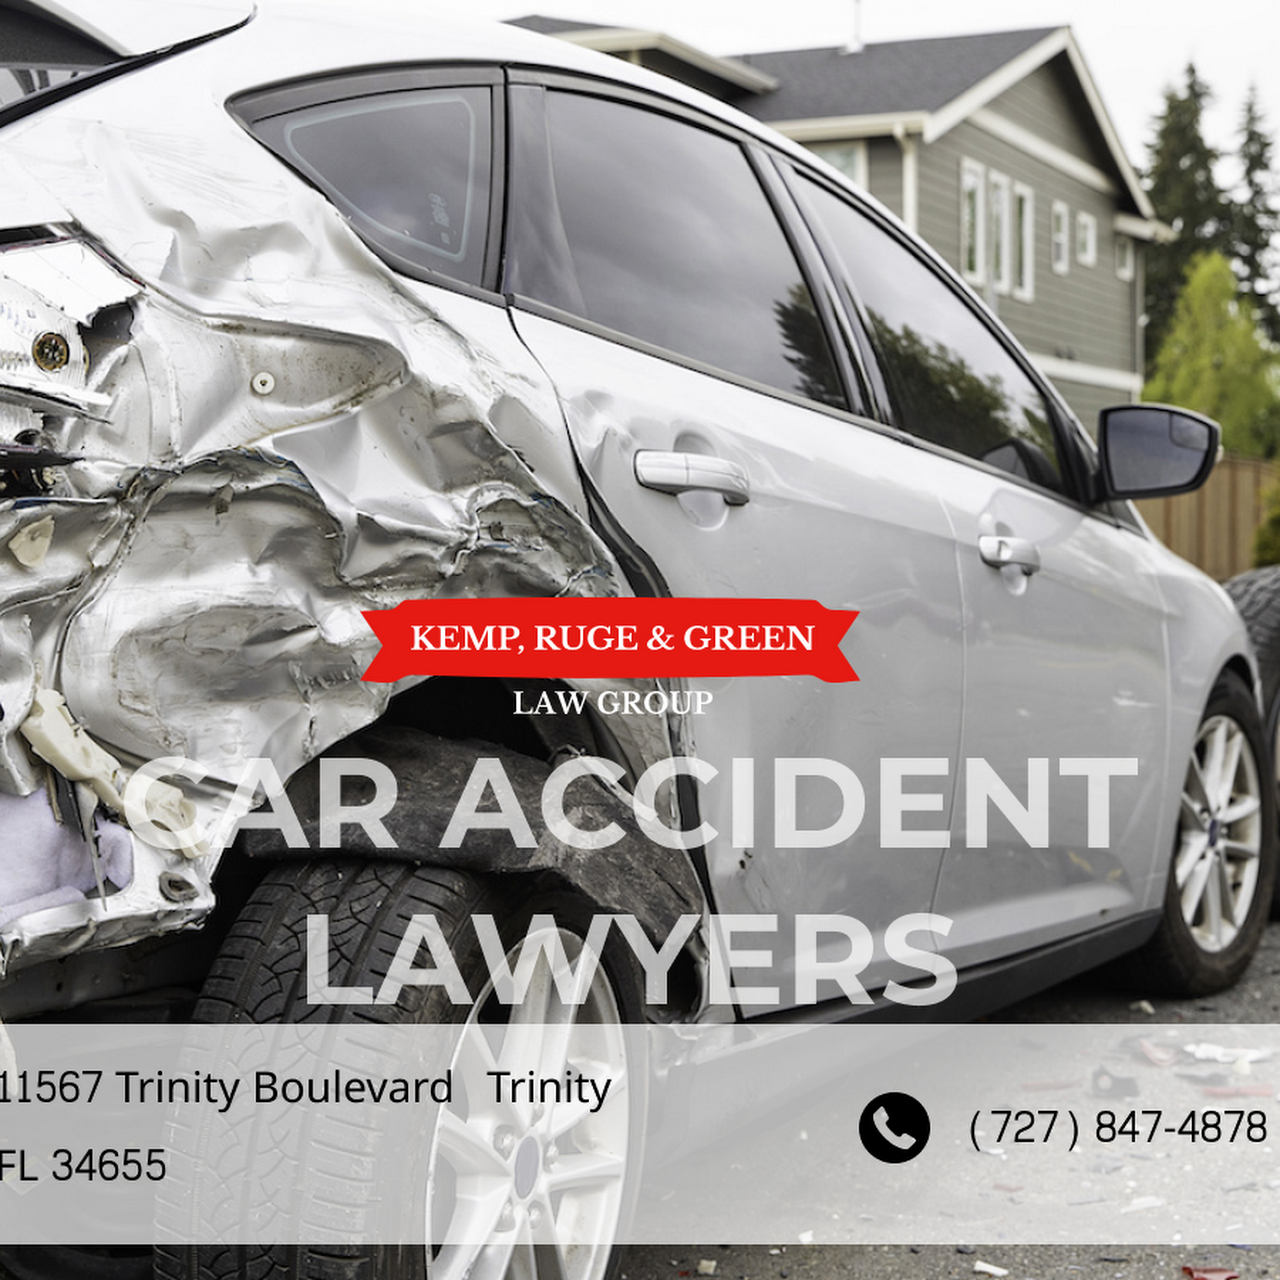 Tampa Car Accident Lawyer Tampa, FL